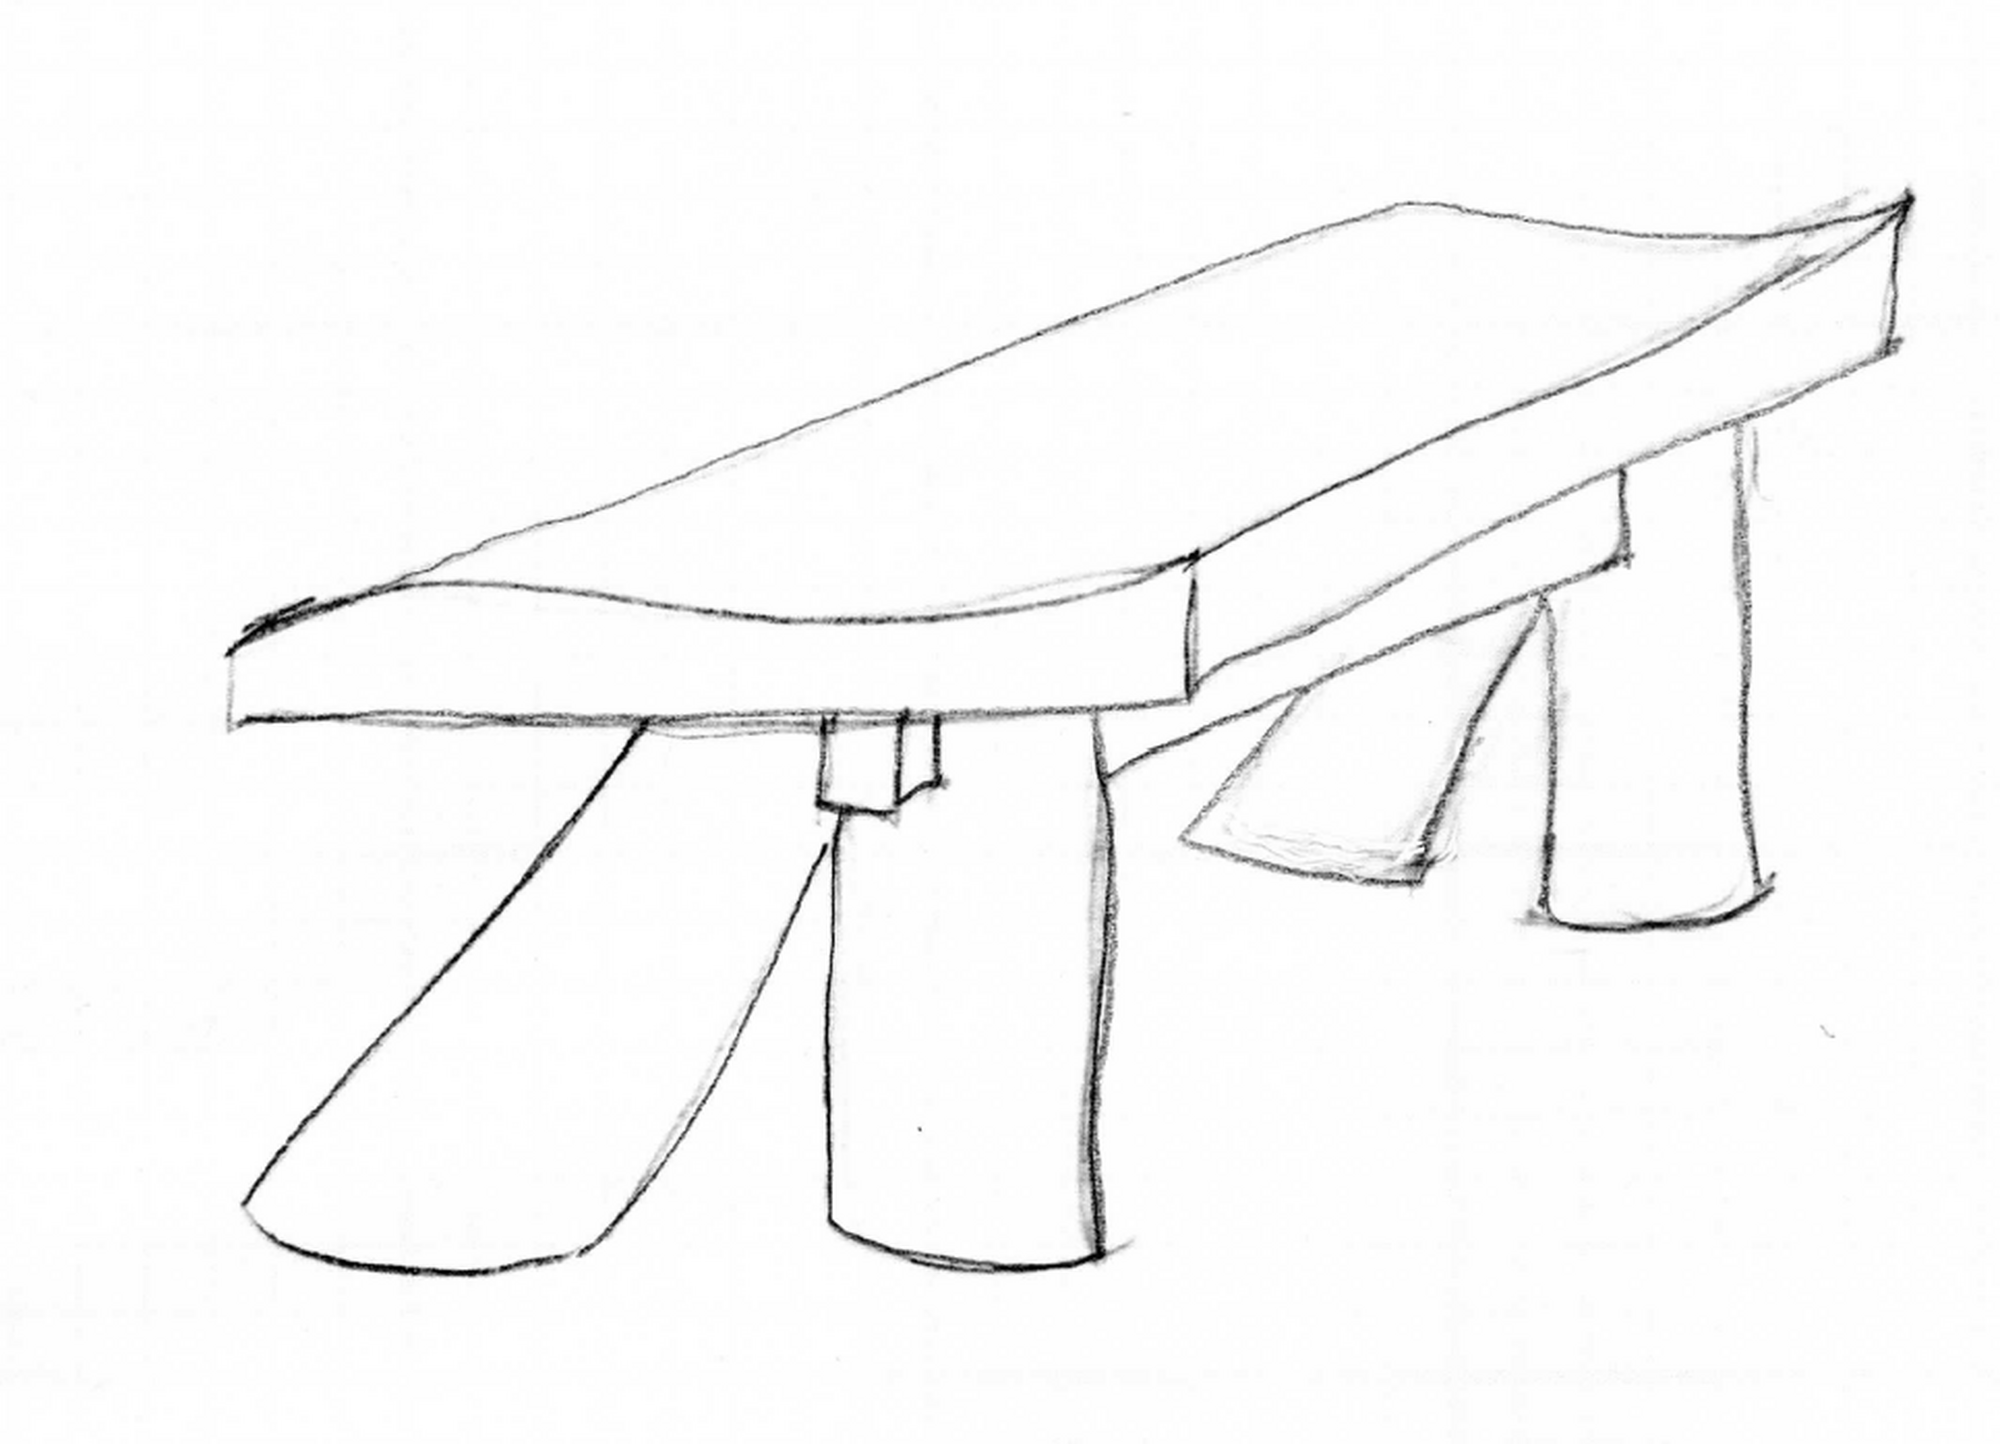 Michael Puryear Sketch for Bench